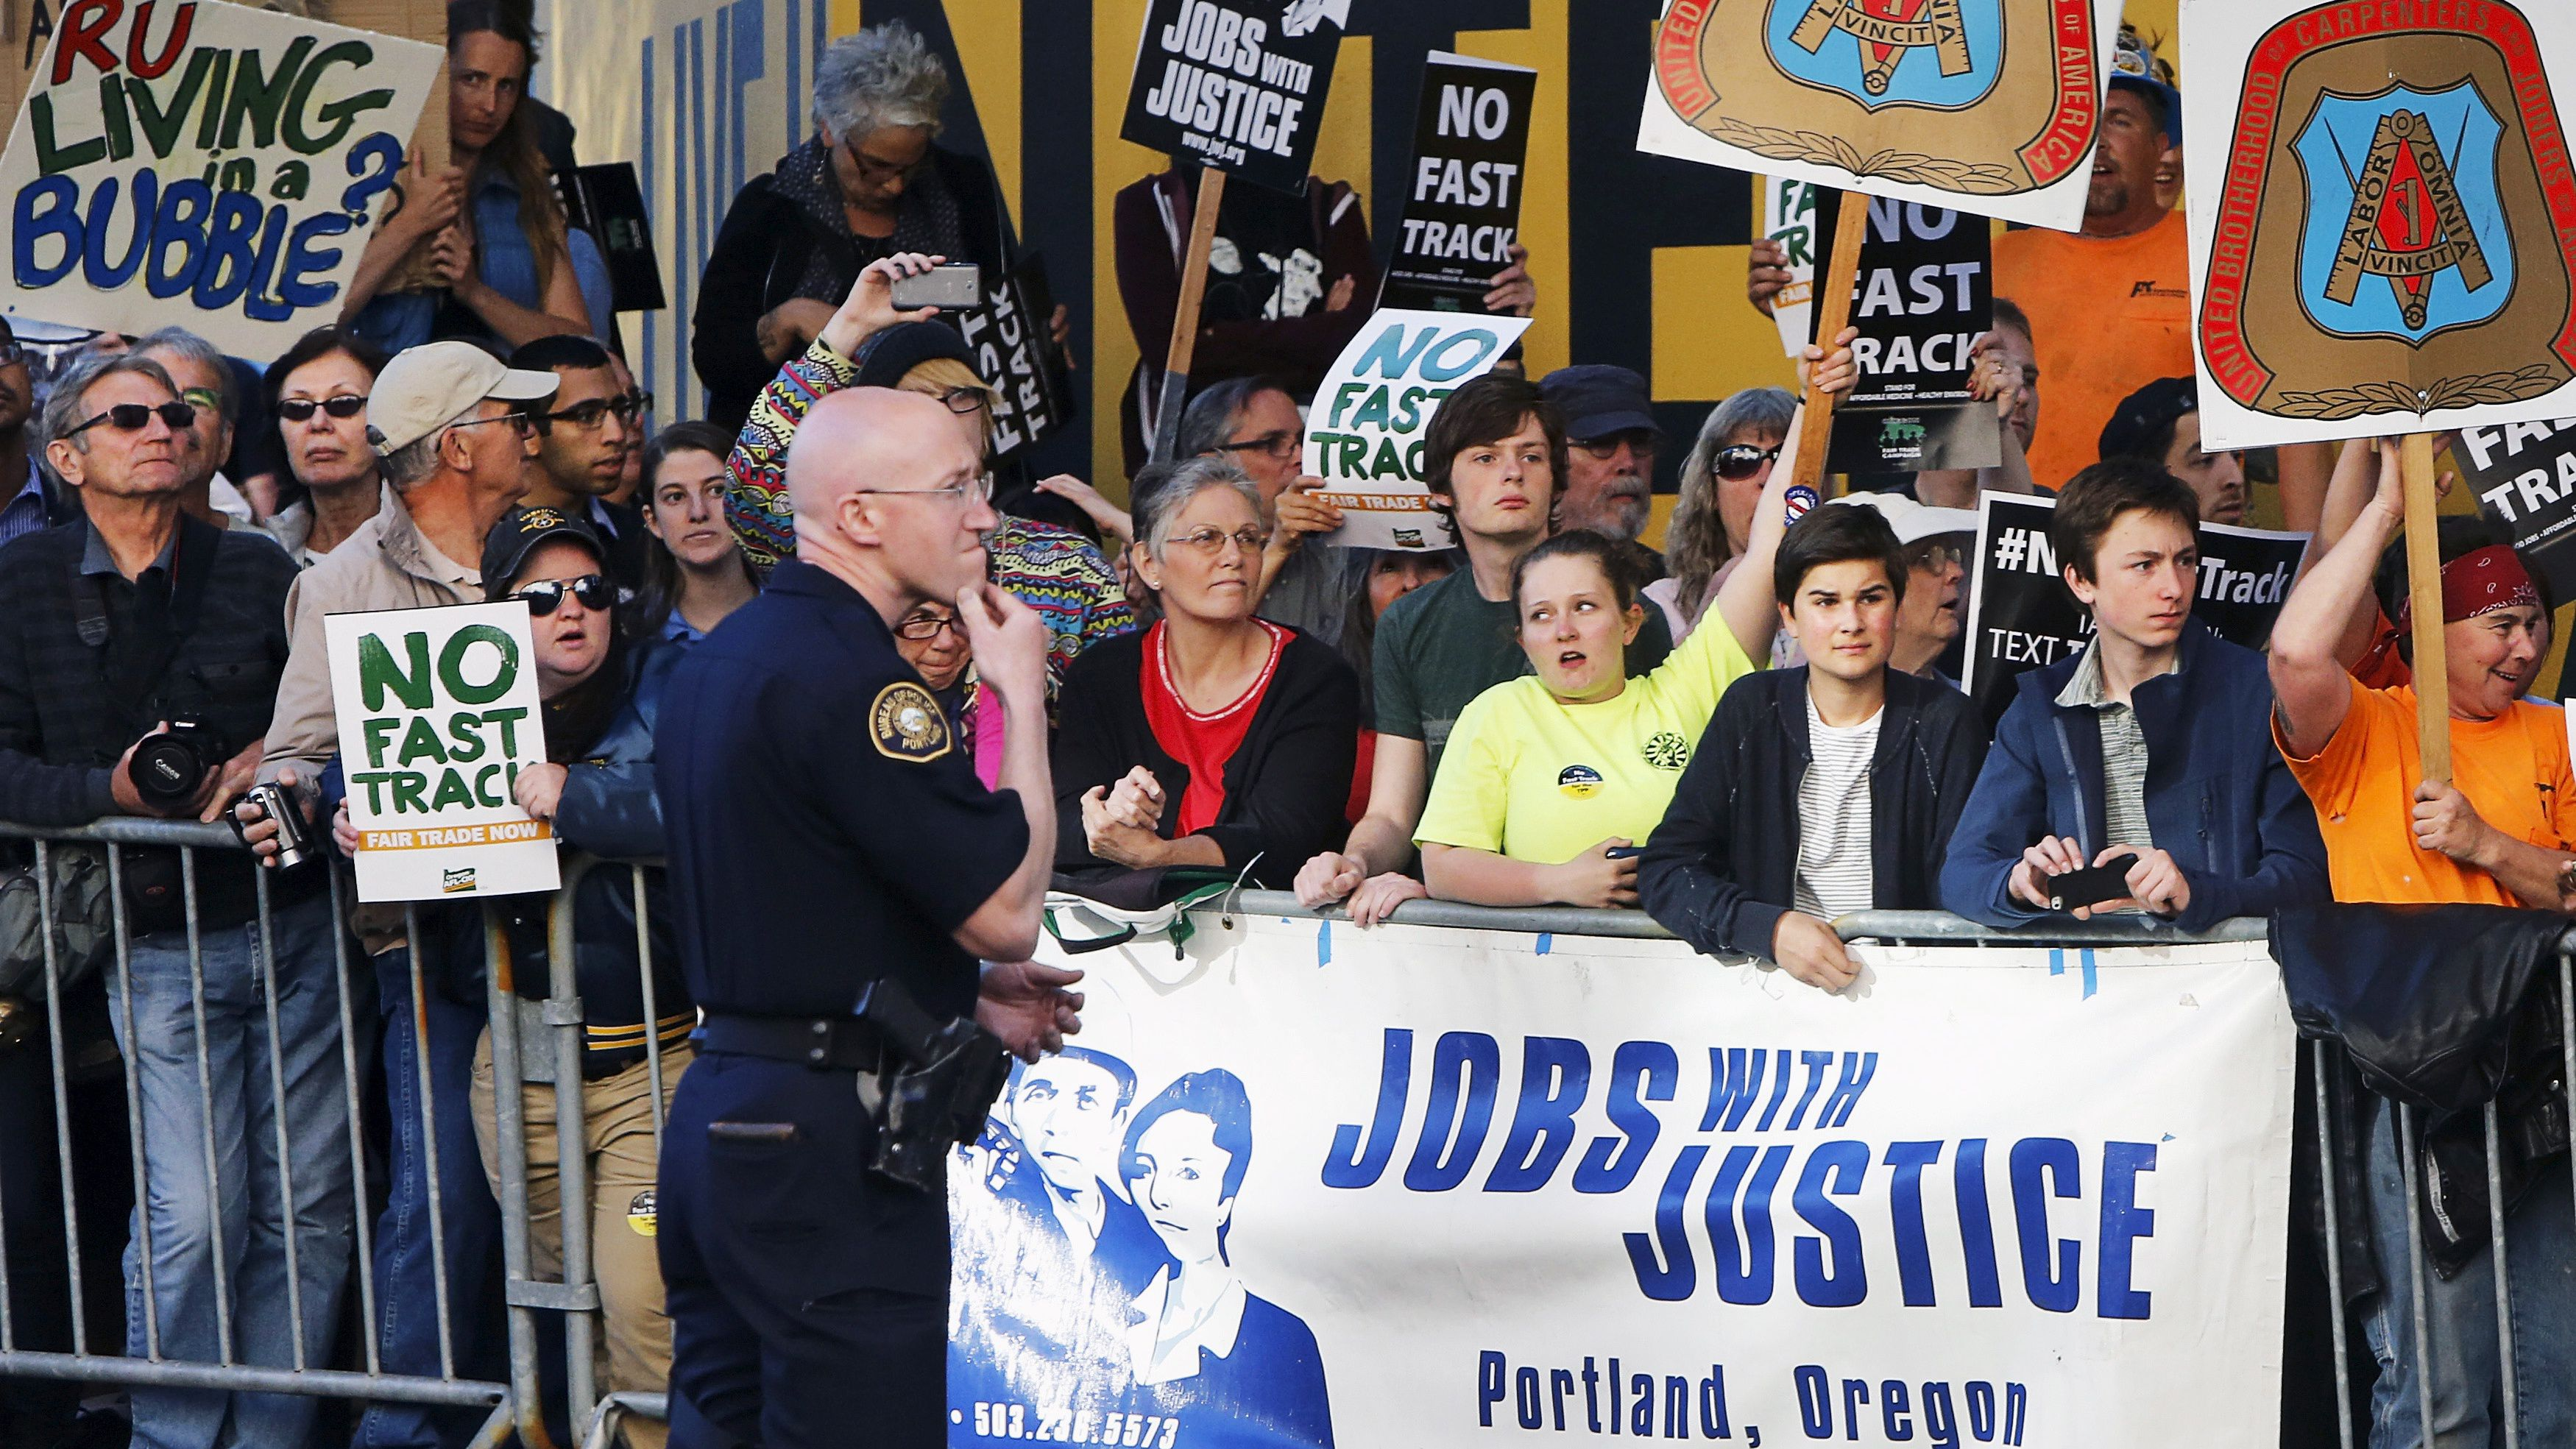 Protesters, many against the so-called fast track trade authority of the Trans-Pacific Partnership (TPP) trade agreement, rally outside the hotel where U.S. President Barack Obama is participating in a Democratic National Committee (DNC) event in Portland, Oregon May 7, 2015.